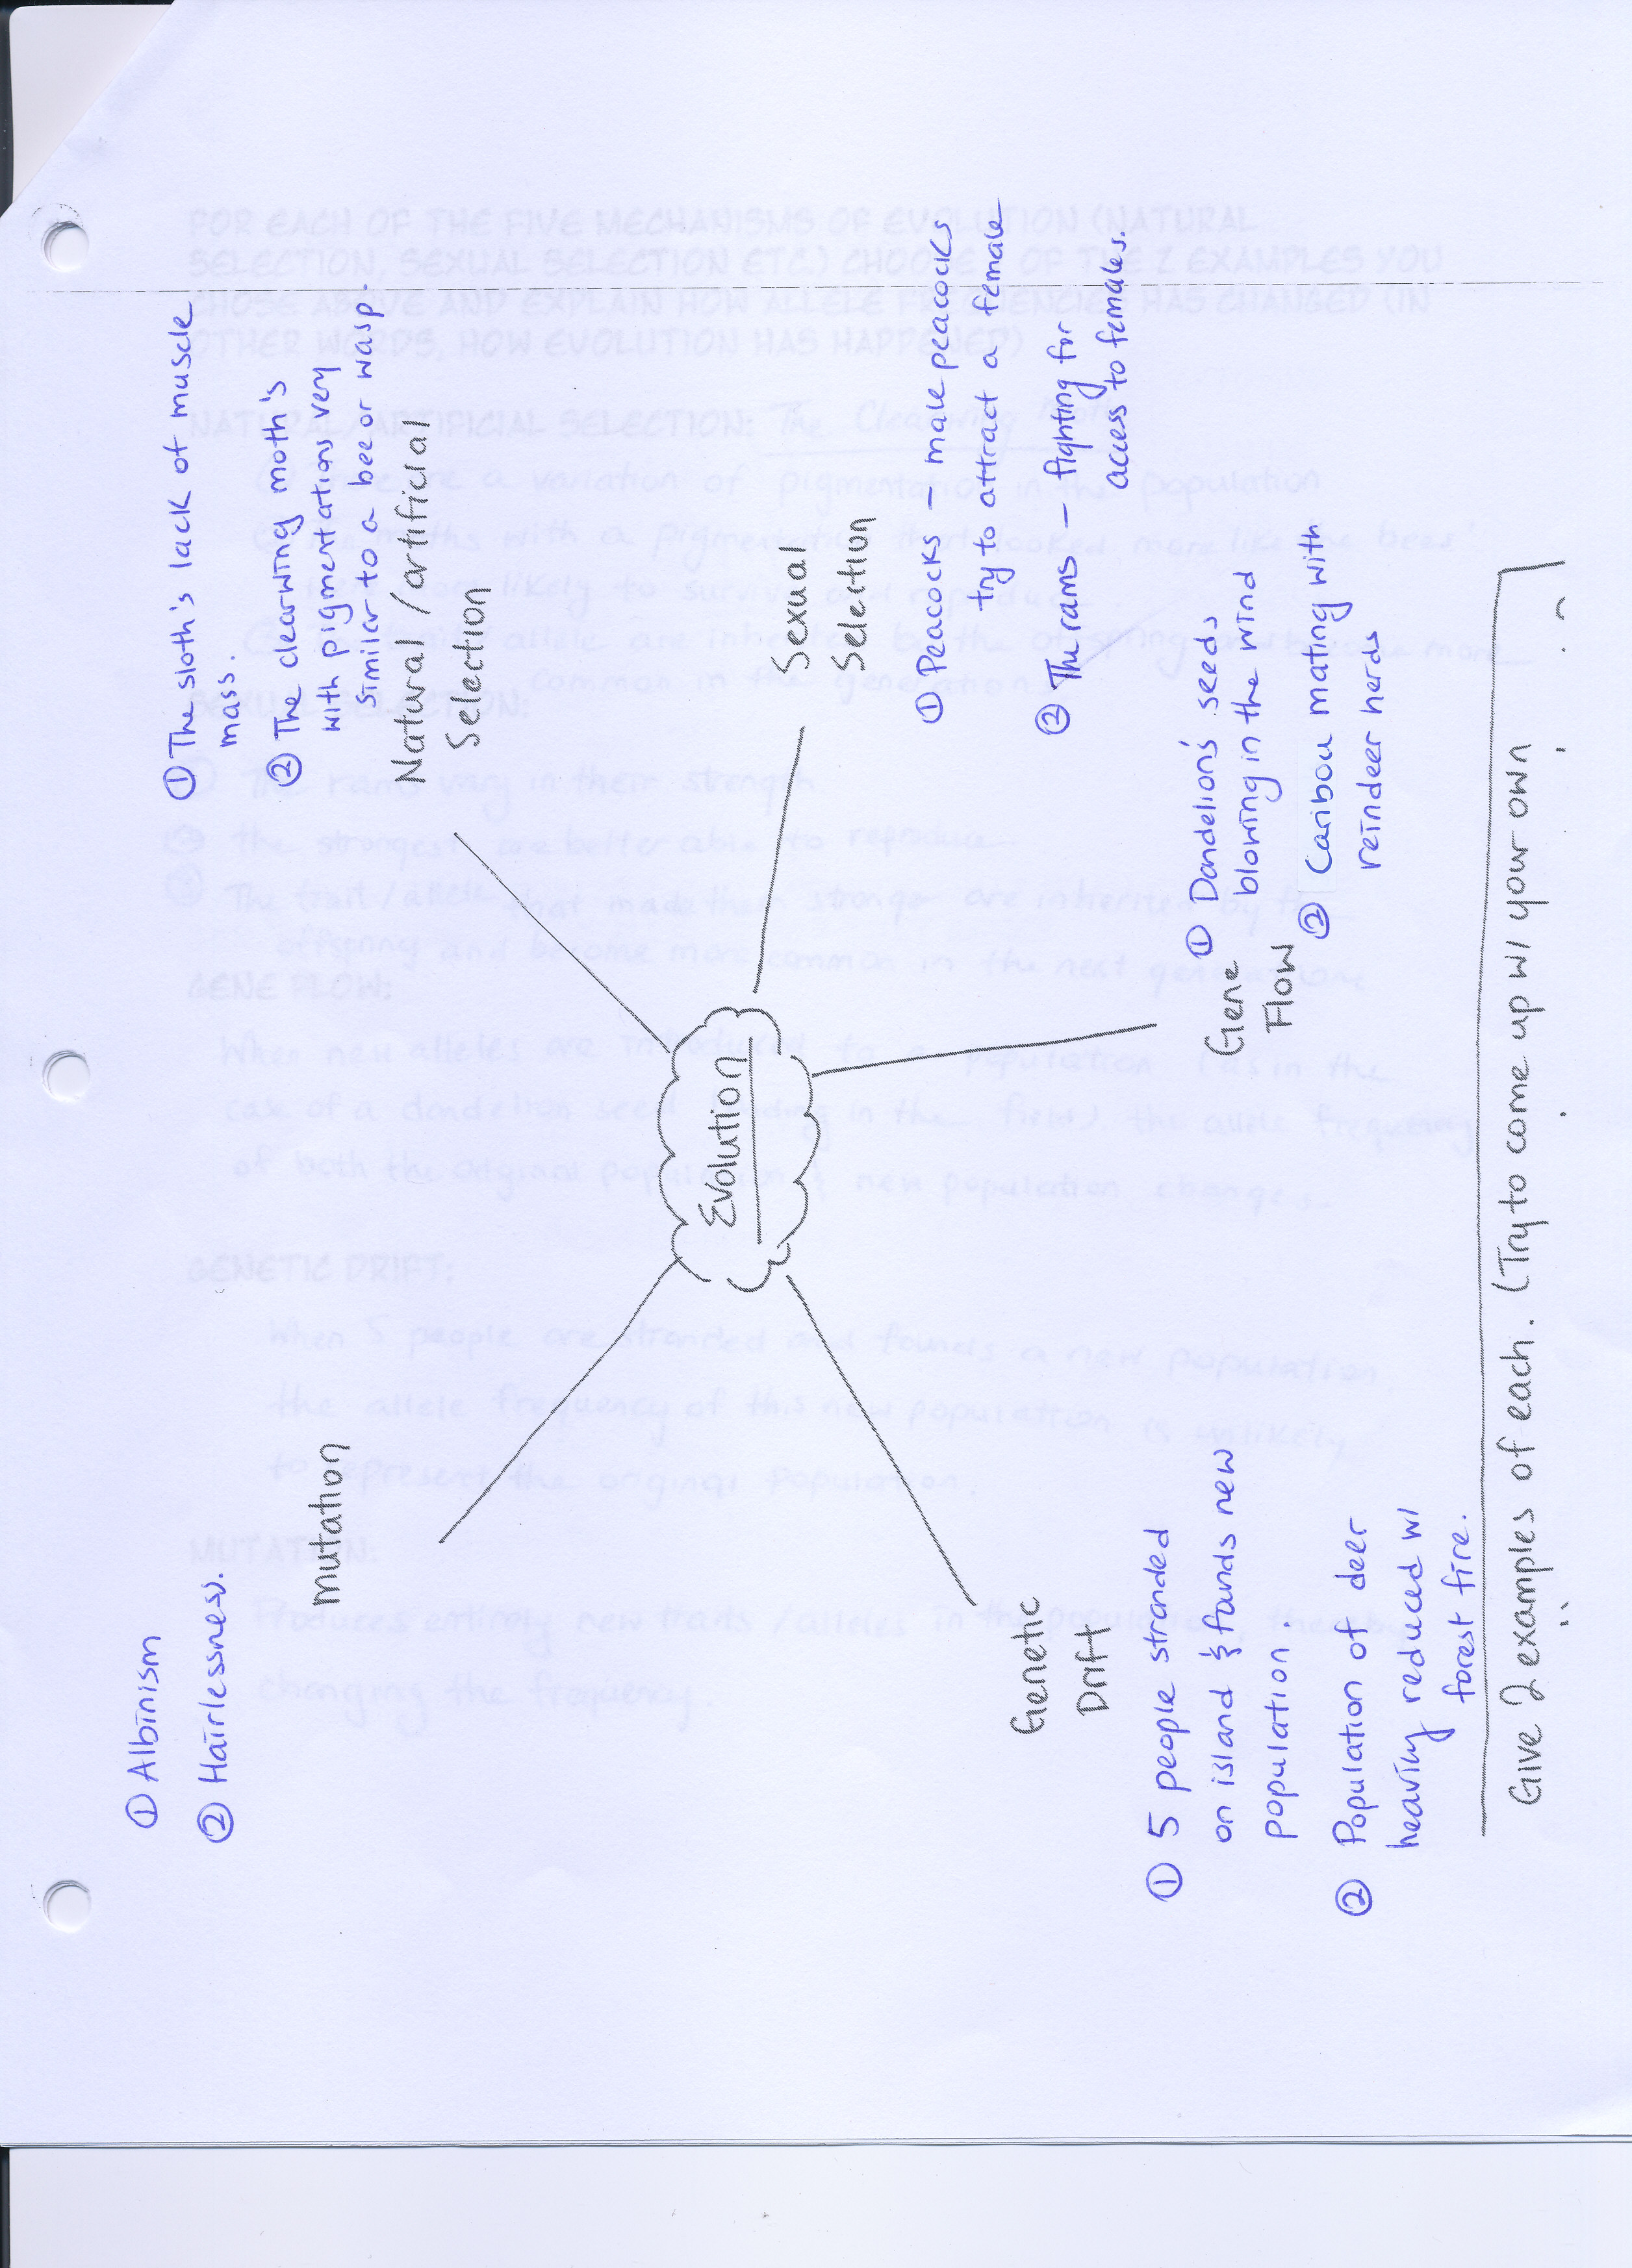 Selection And Speciation Worksheet Answers